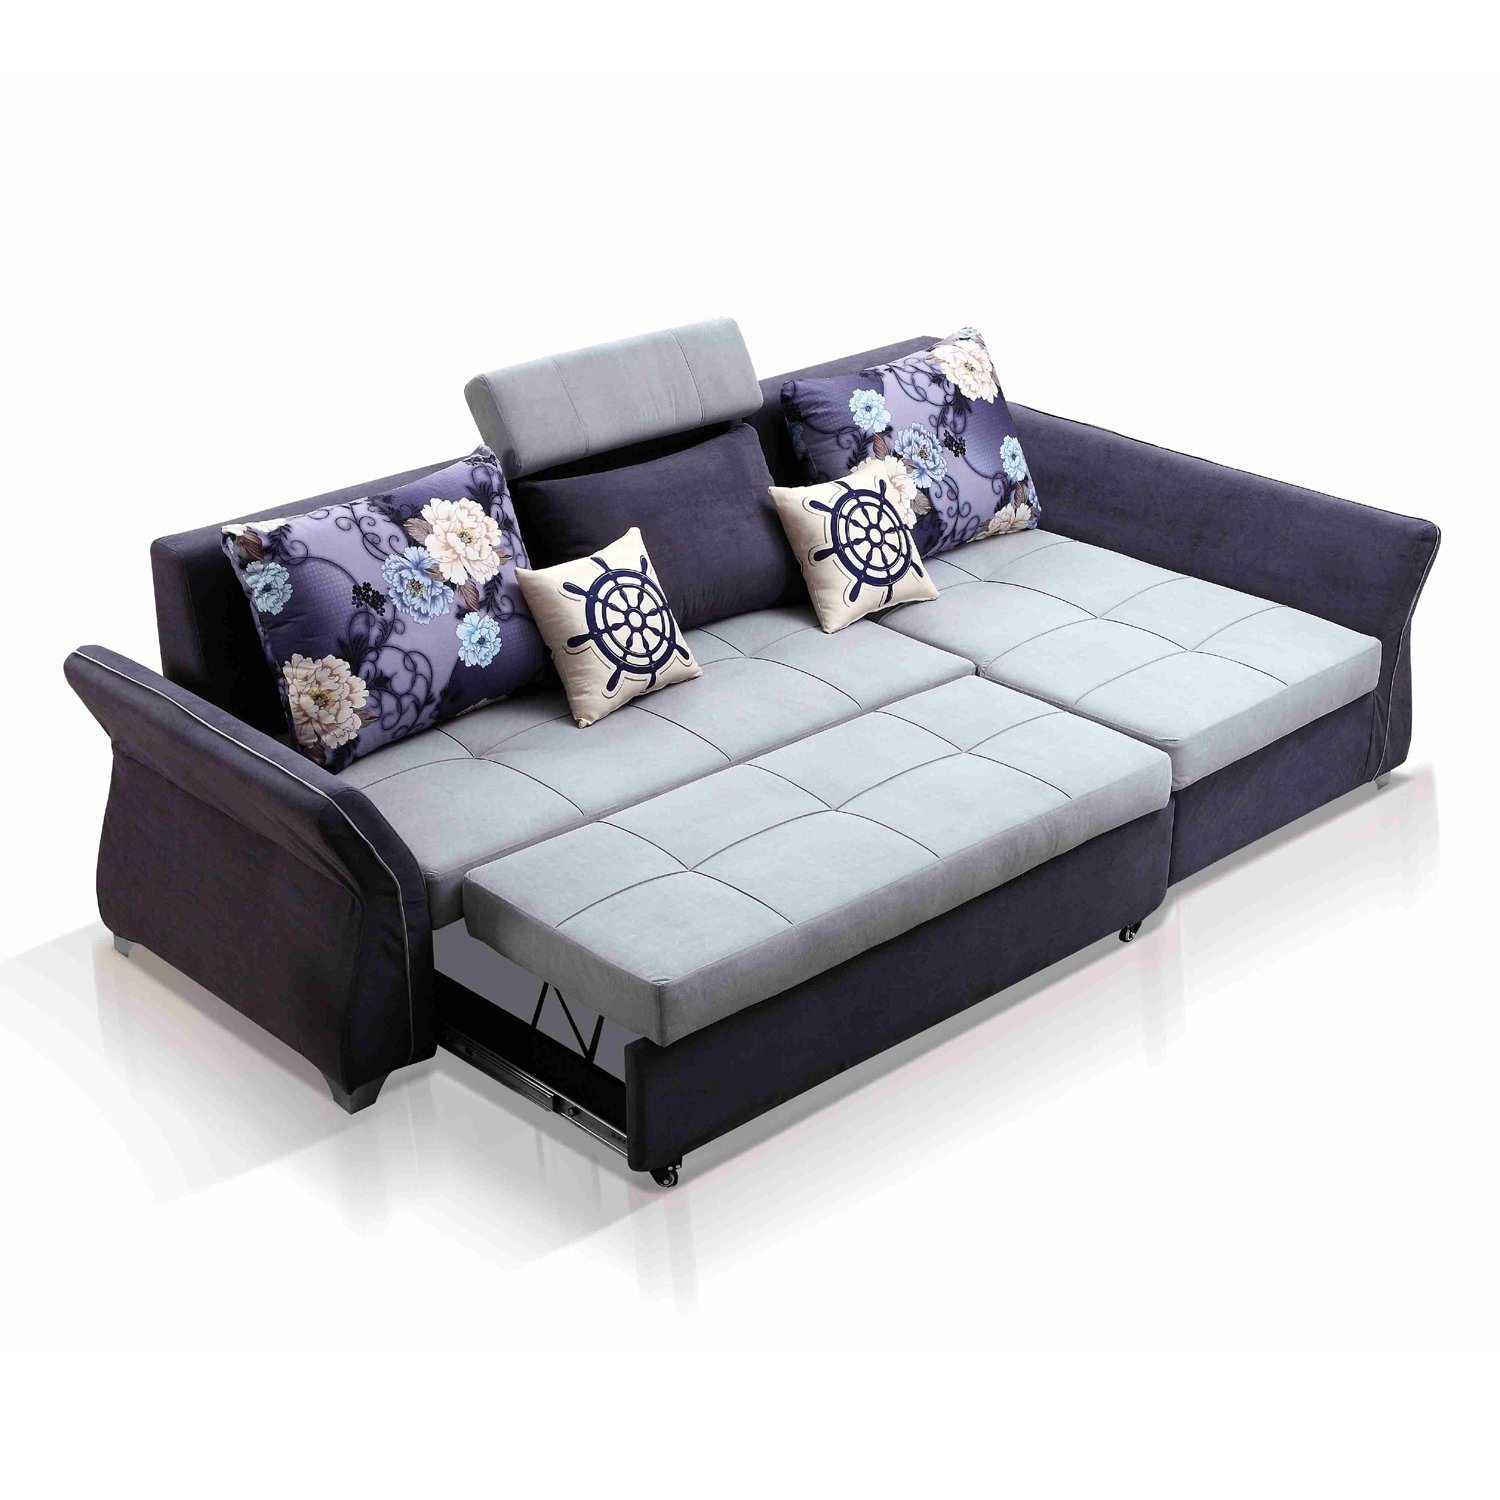 L Sofa Hot Item L Shaped Sectional Sofa Cum Bed With Storage